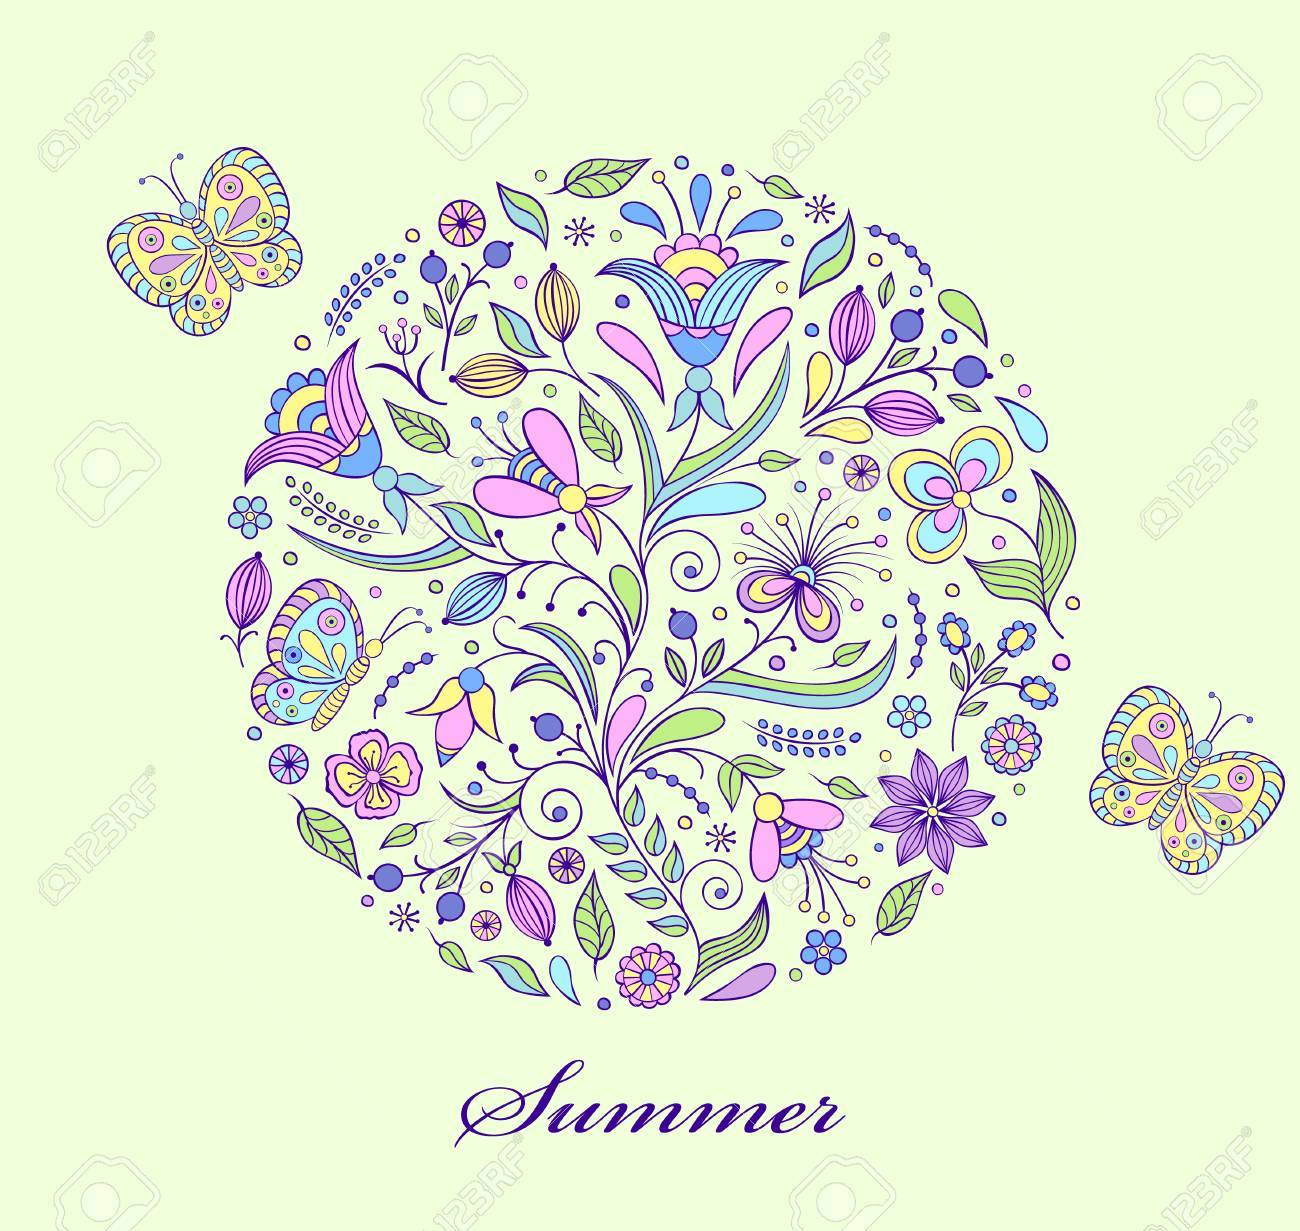 Vector illustration of floral hand drawn colorful pattern Stock Vector - 17062630